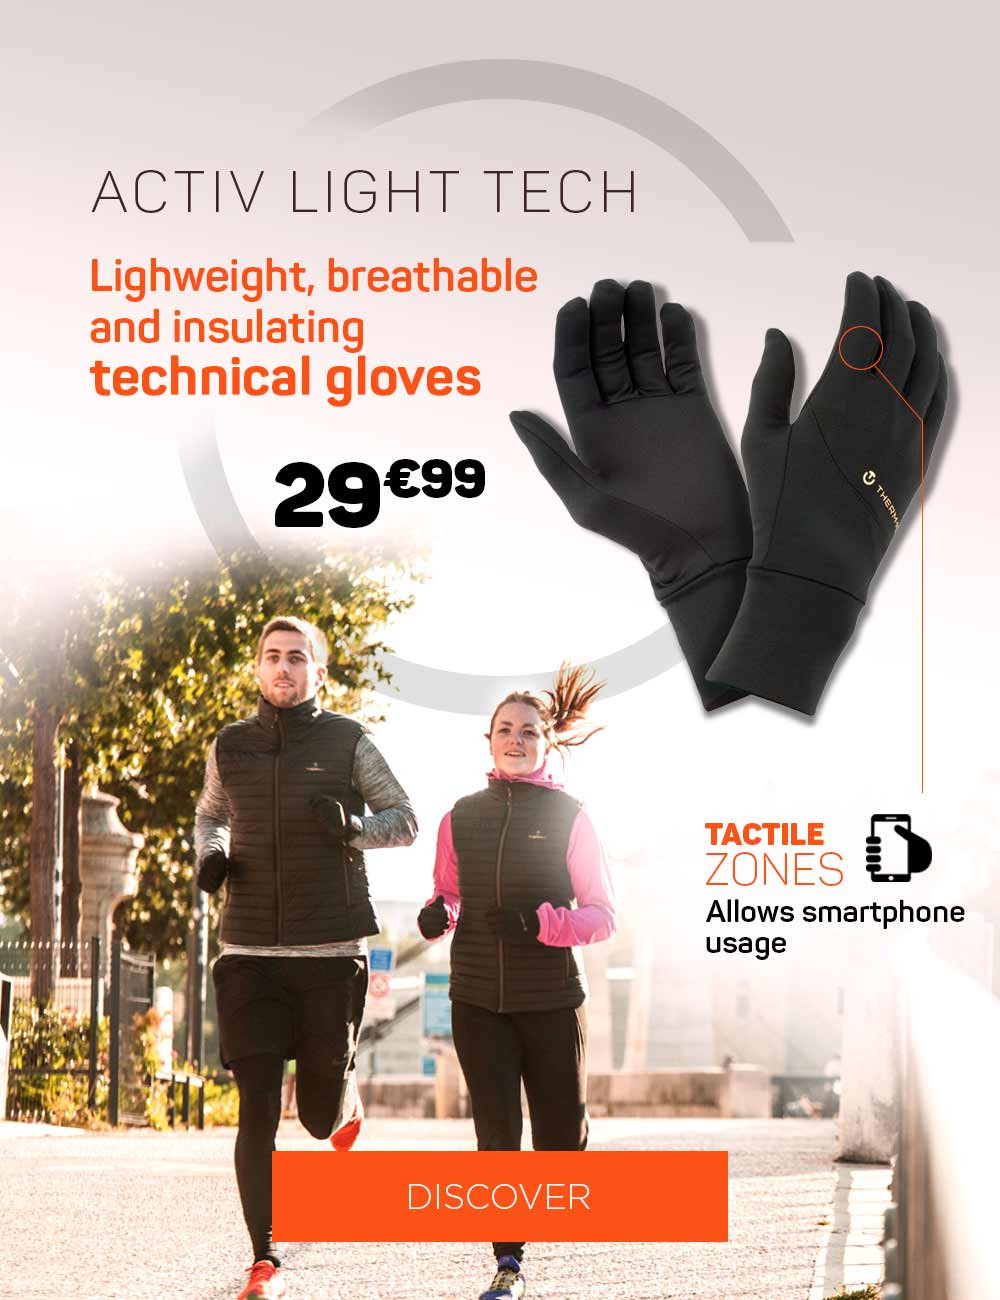 Lightweight, breathable and insulating technical gloves